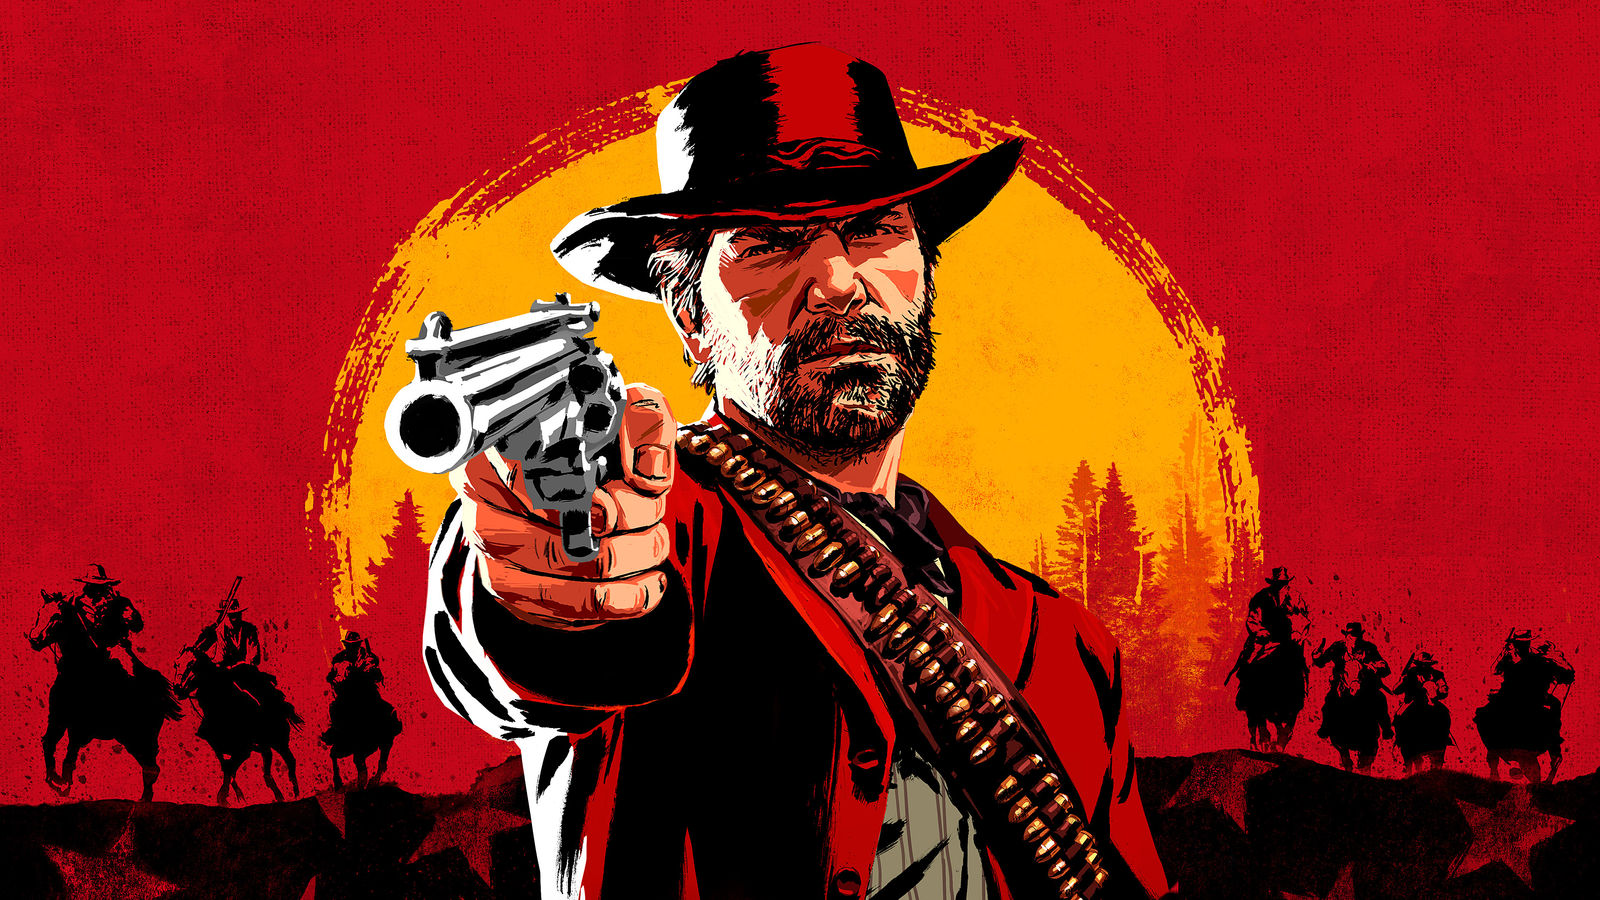 Red Dead Redemption 2 Wallpaper By 3demerzel On Deviantart